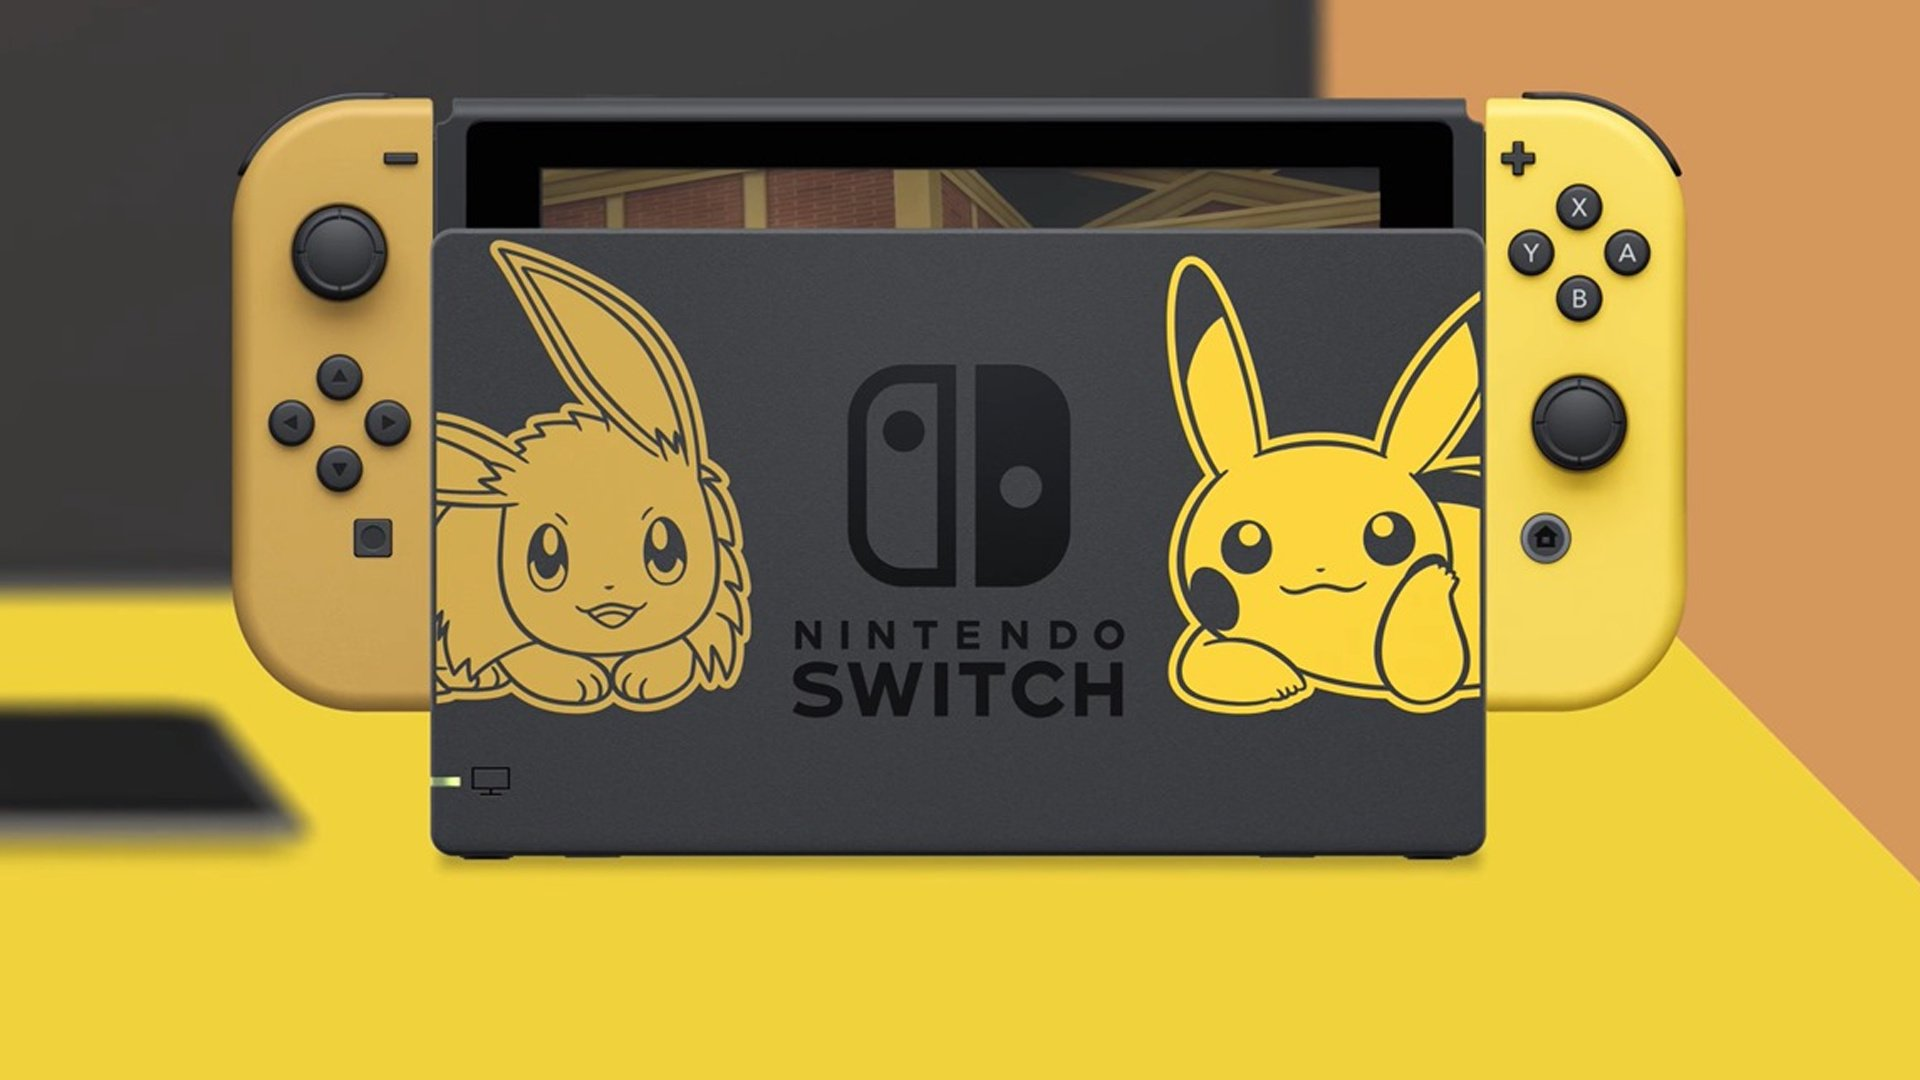 Where To Buy The Pokémon Let's Go Pikachu And Eevee Switch Console Bundle -  Guide - Nintendo Life